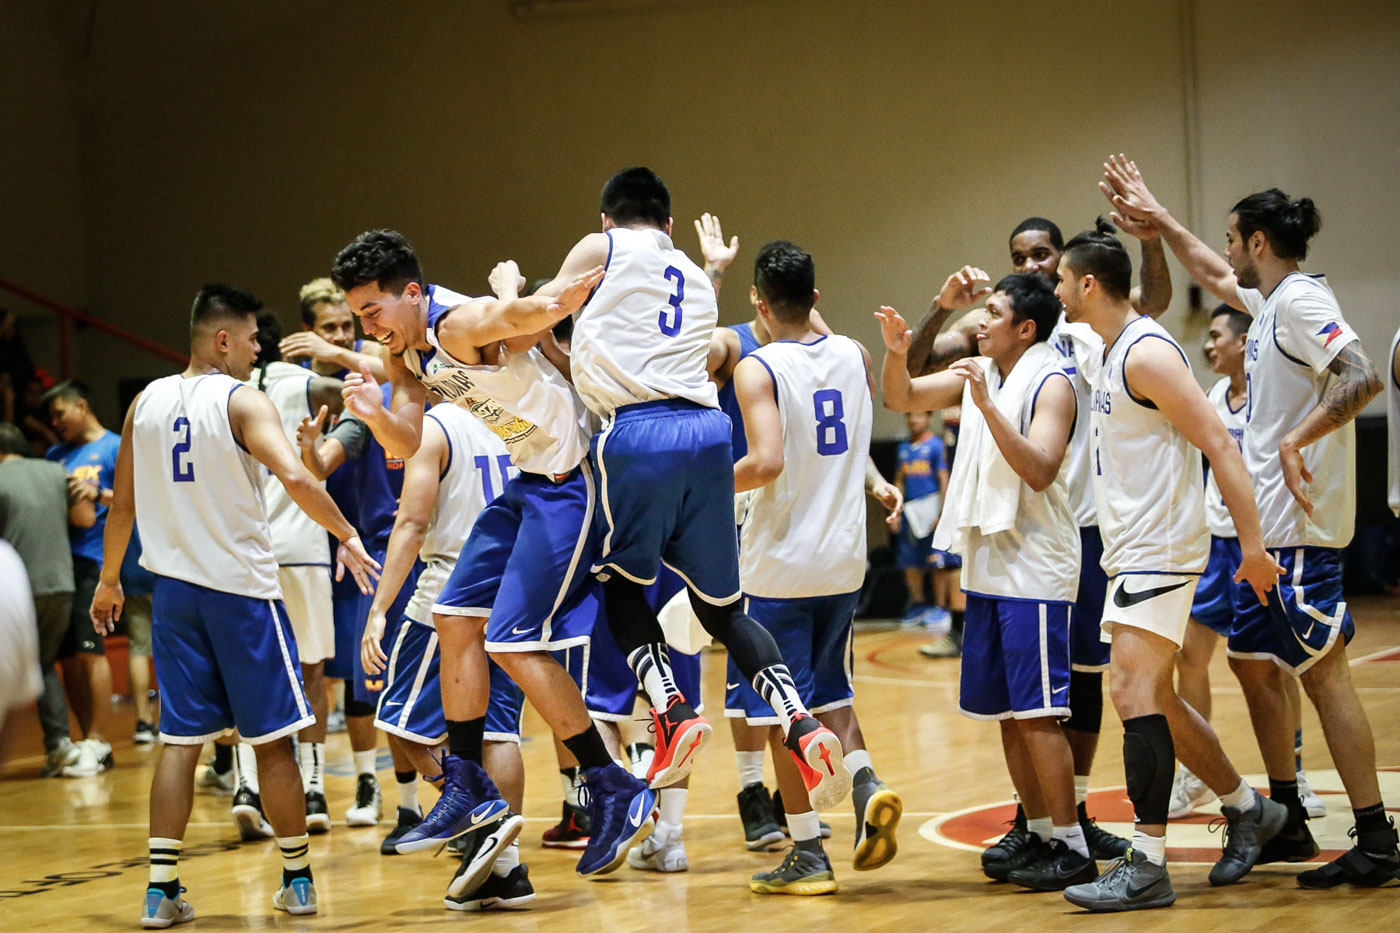 Gilas Pilipinas ends 2017 Jones Cup at 4th place after win over Iran